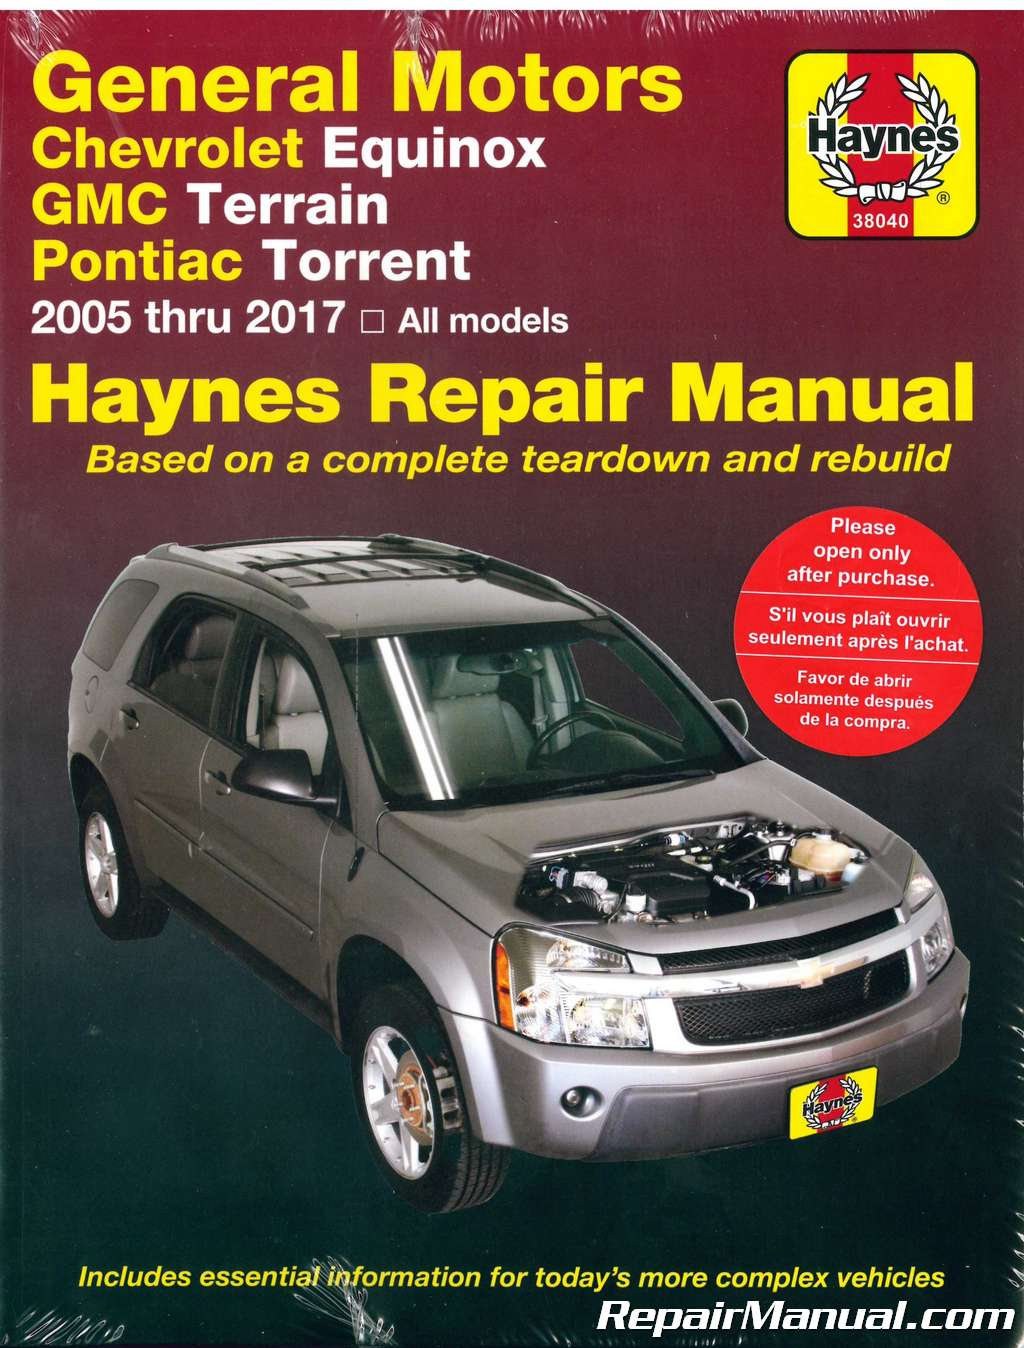 Chevrolet Equinox GMC Terrain Pontiac Torrent 2005-2017 Haynes Repair Manual